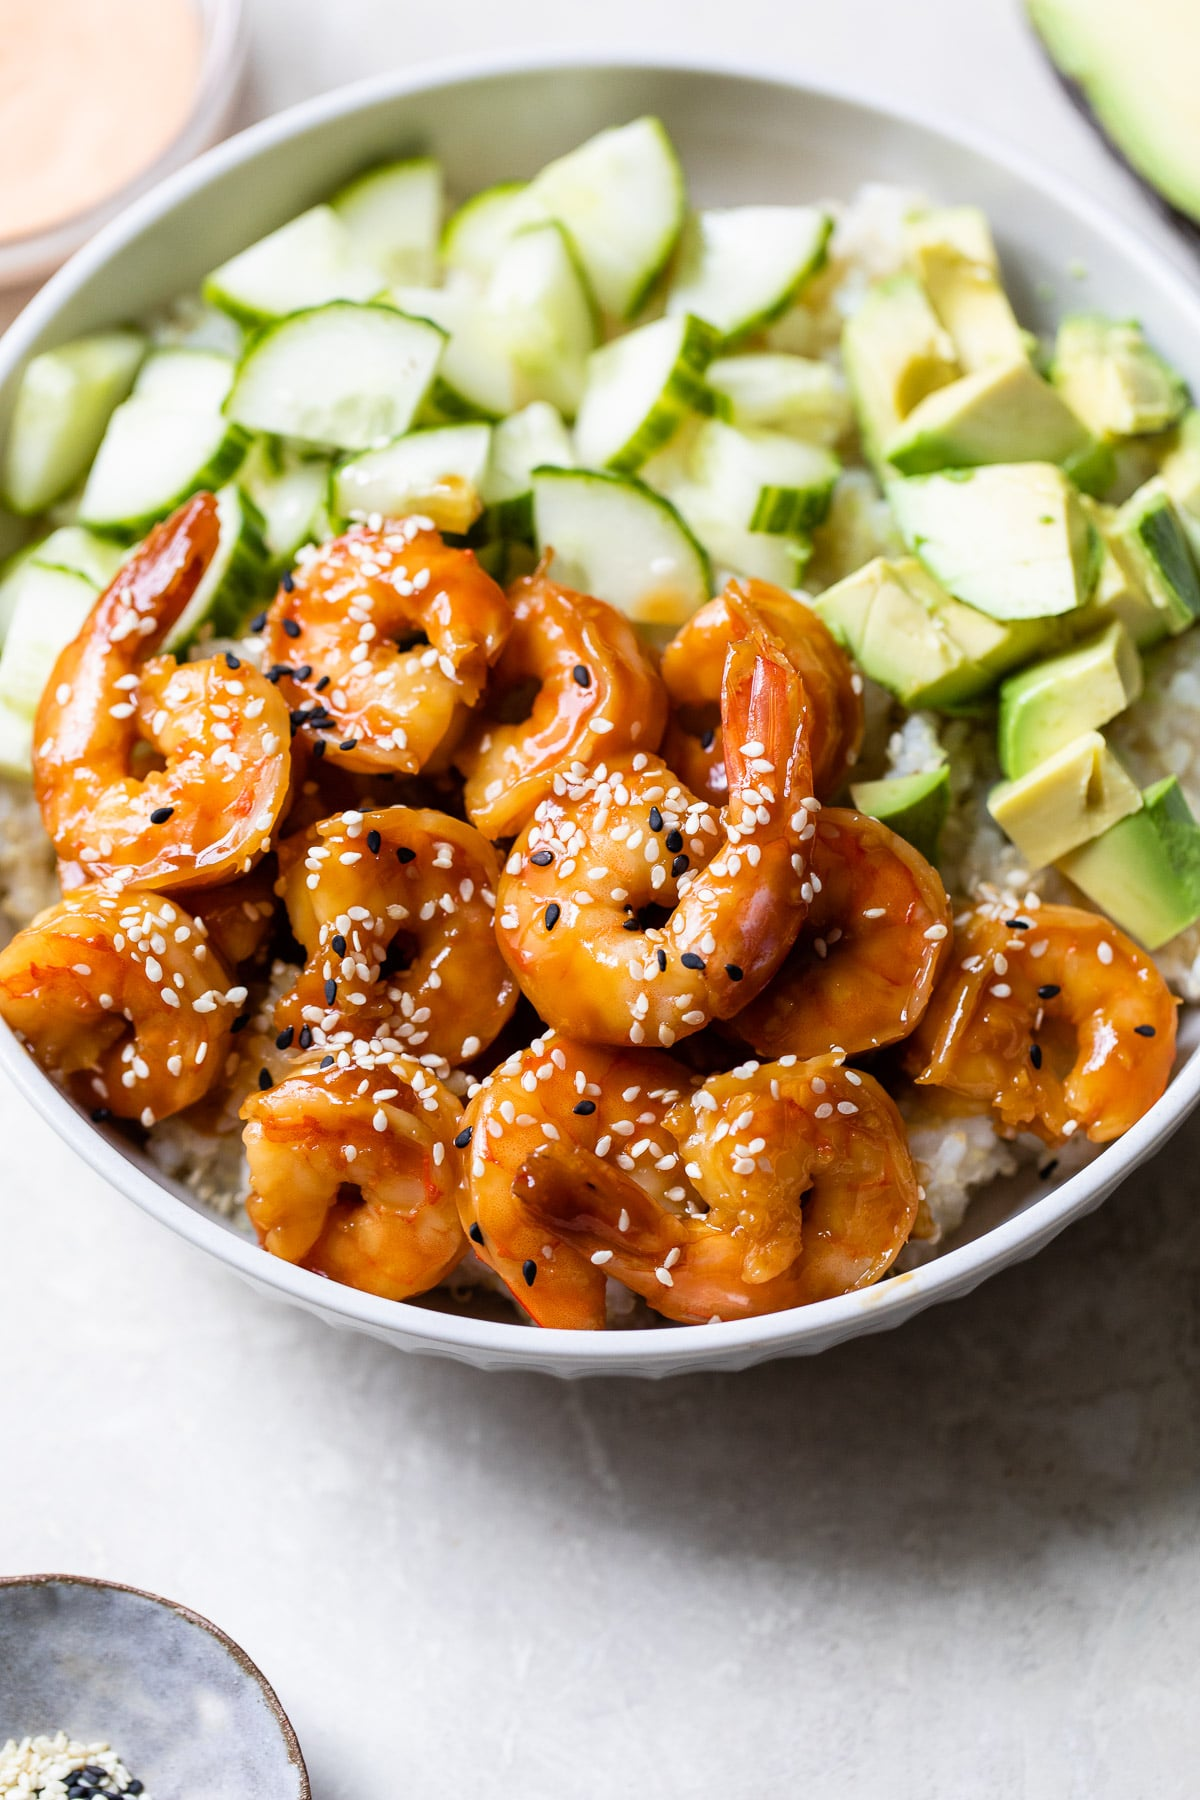 shrimp in a bowl topped with sesame seeds